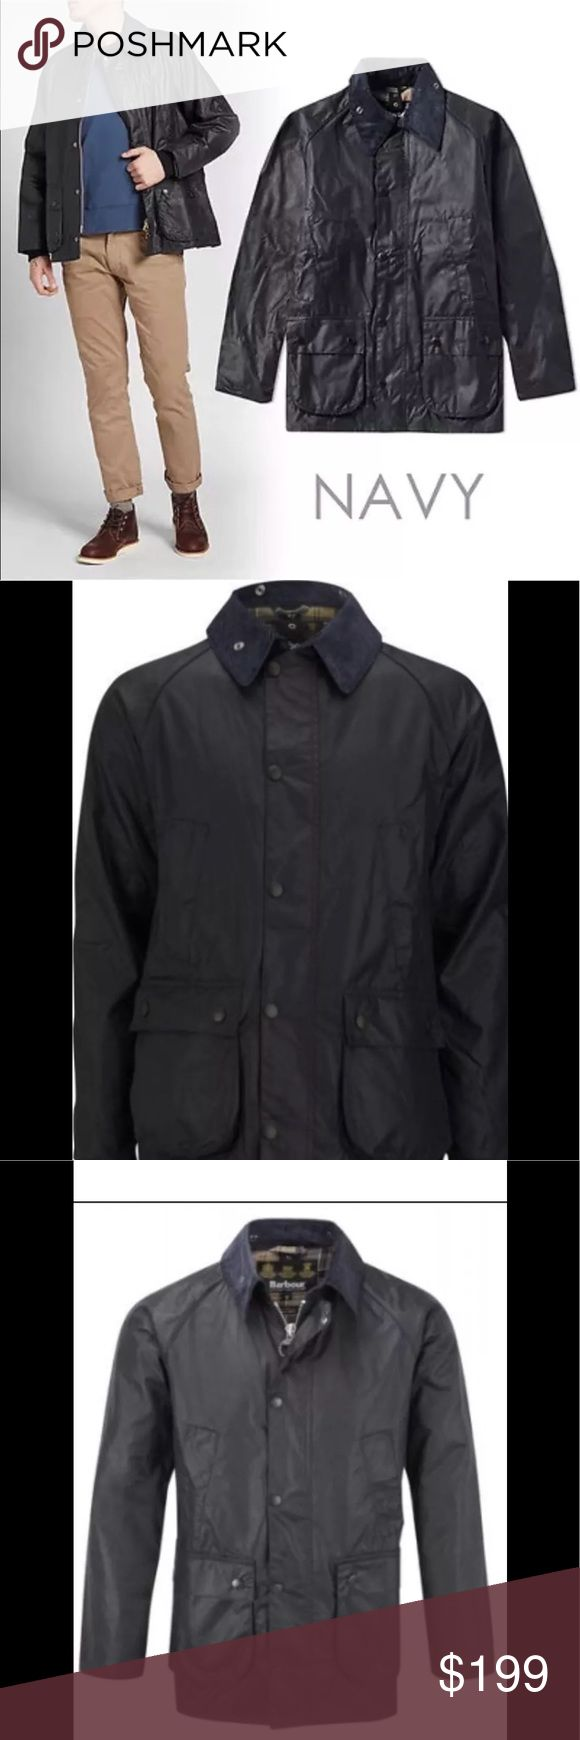 Barbour men's bedale wax jacket XL Xl could be unisex   Wax jacket by Barbour  Good condition  Could use a new waxing  Small rip in side  Worn very little  Classic jacket  Waterproof  Plaid inside  Corduroy collar  Roomy Barbour Jackets & Coats Military & Field